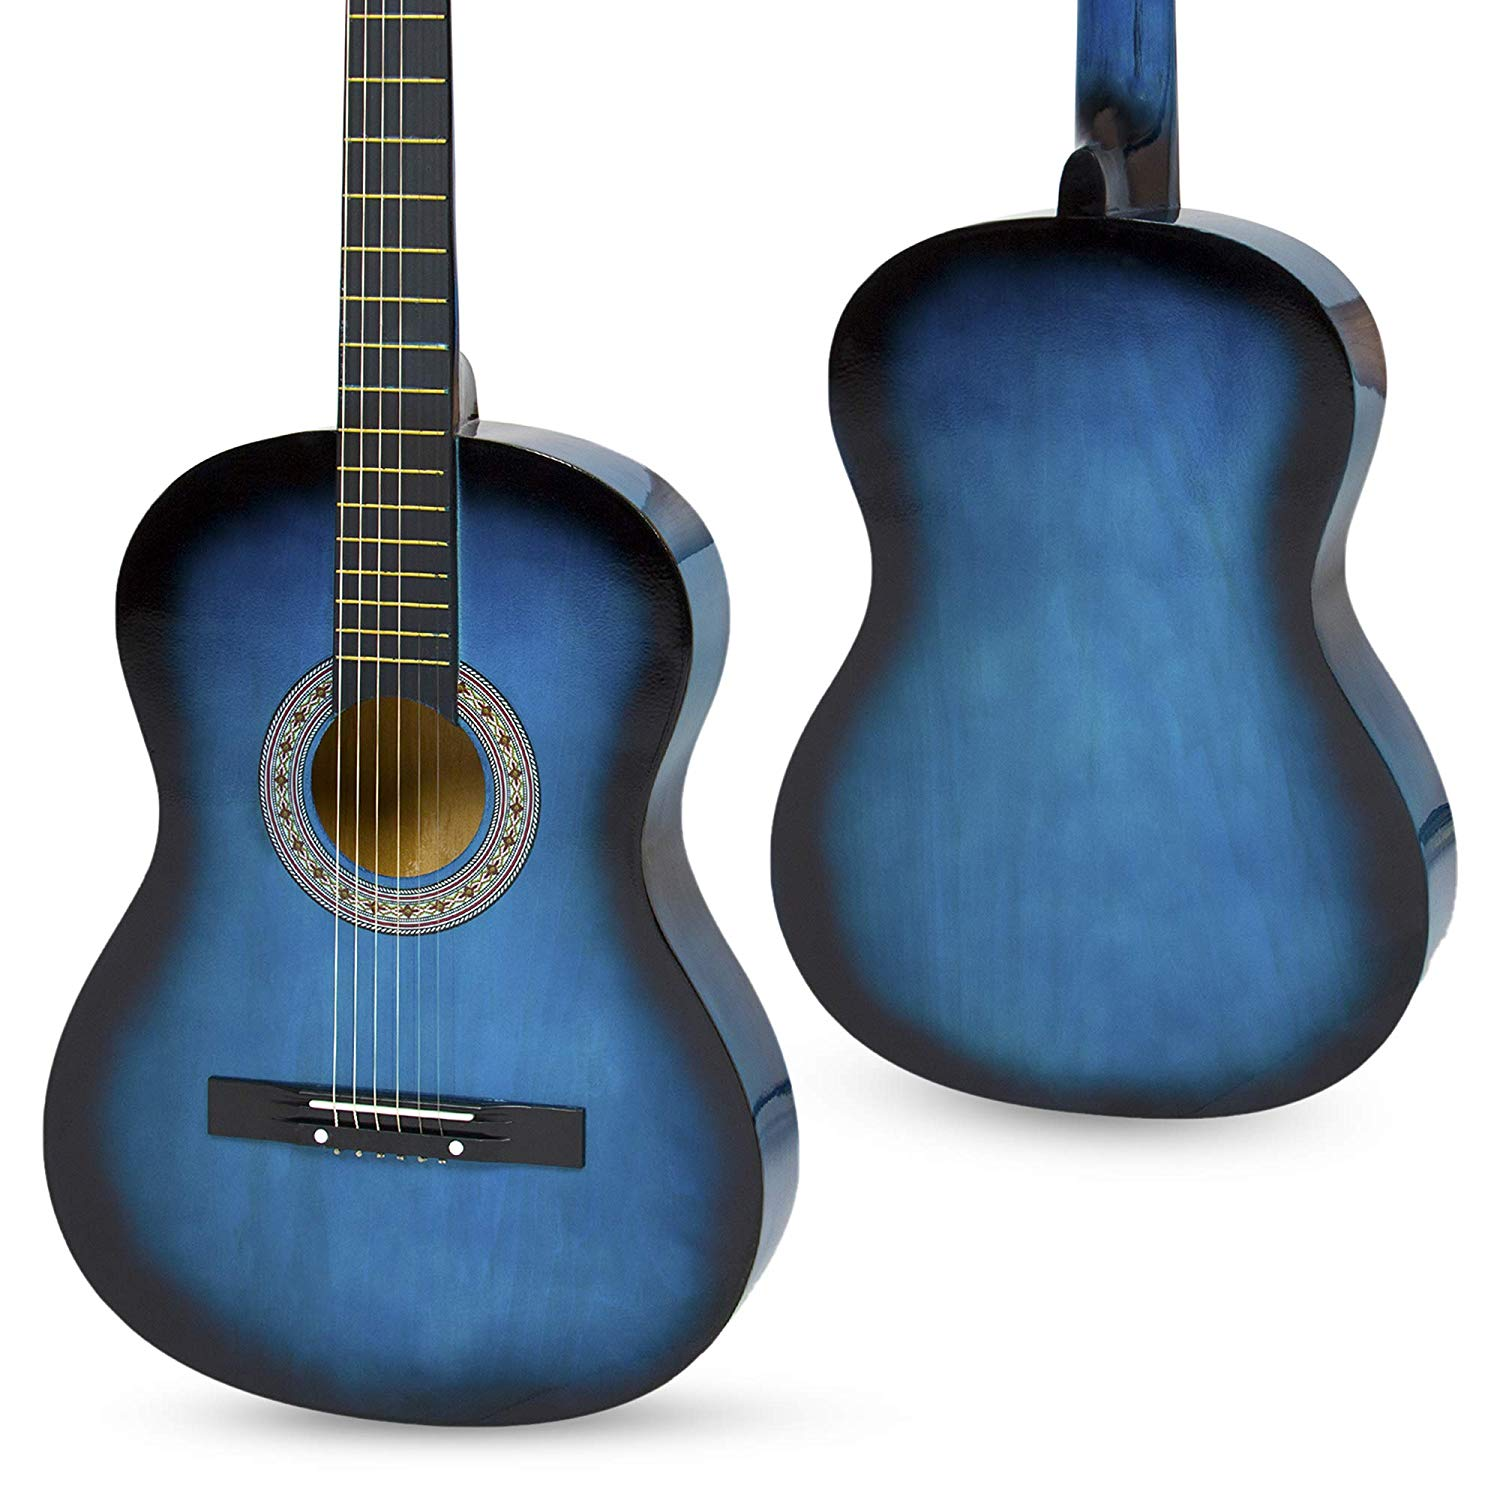 Front and backside of the Best Choice 38inch Beginner Blue Acoustic Guitar